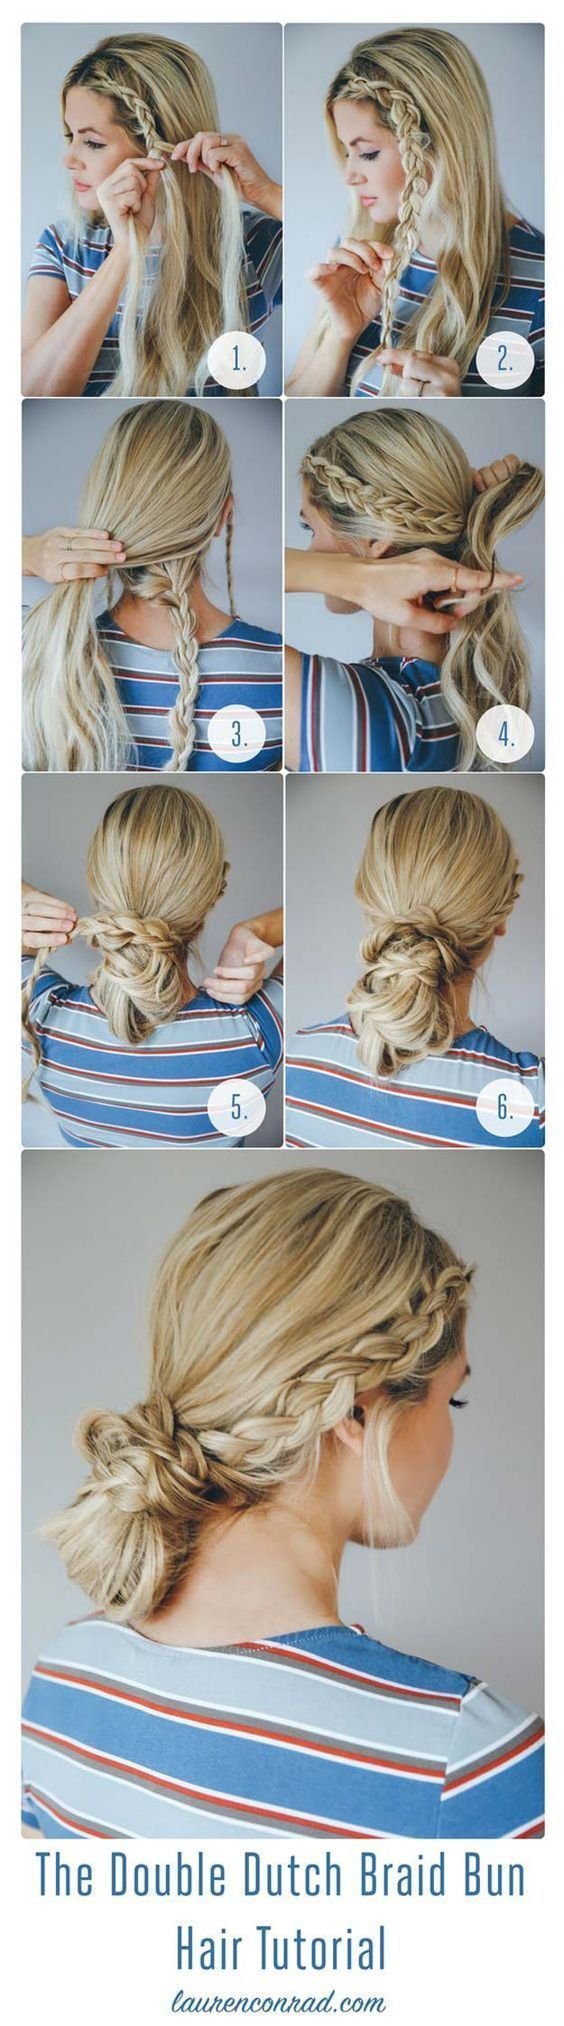 14+ Fantastic Girls Hairstyles For Teens Ideas